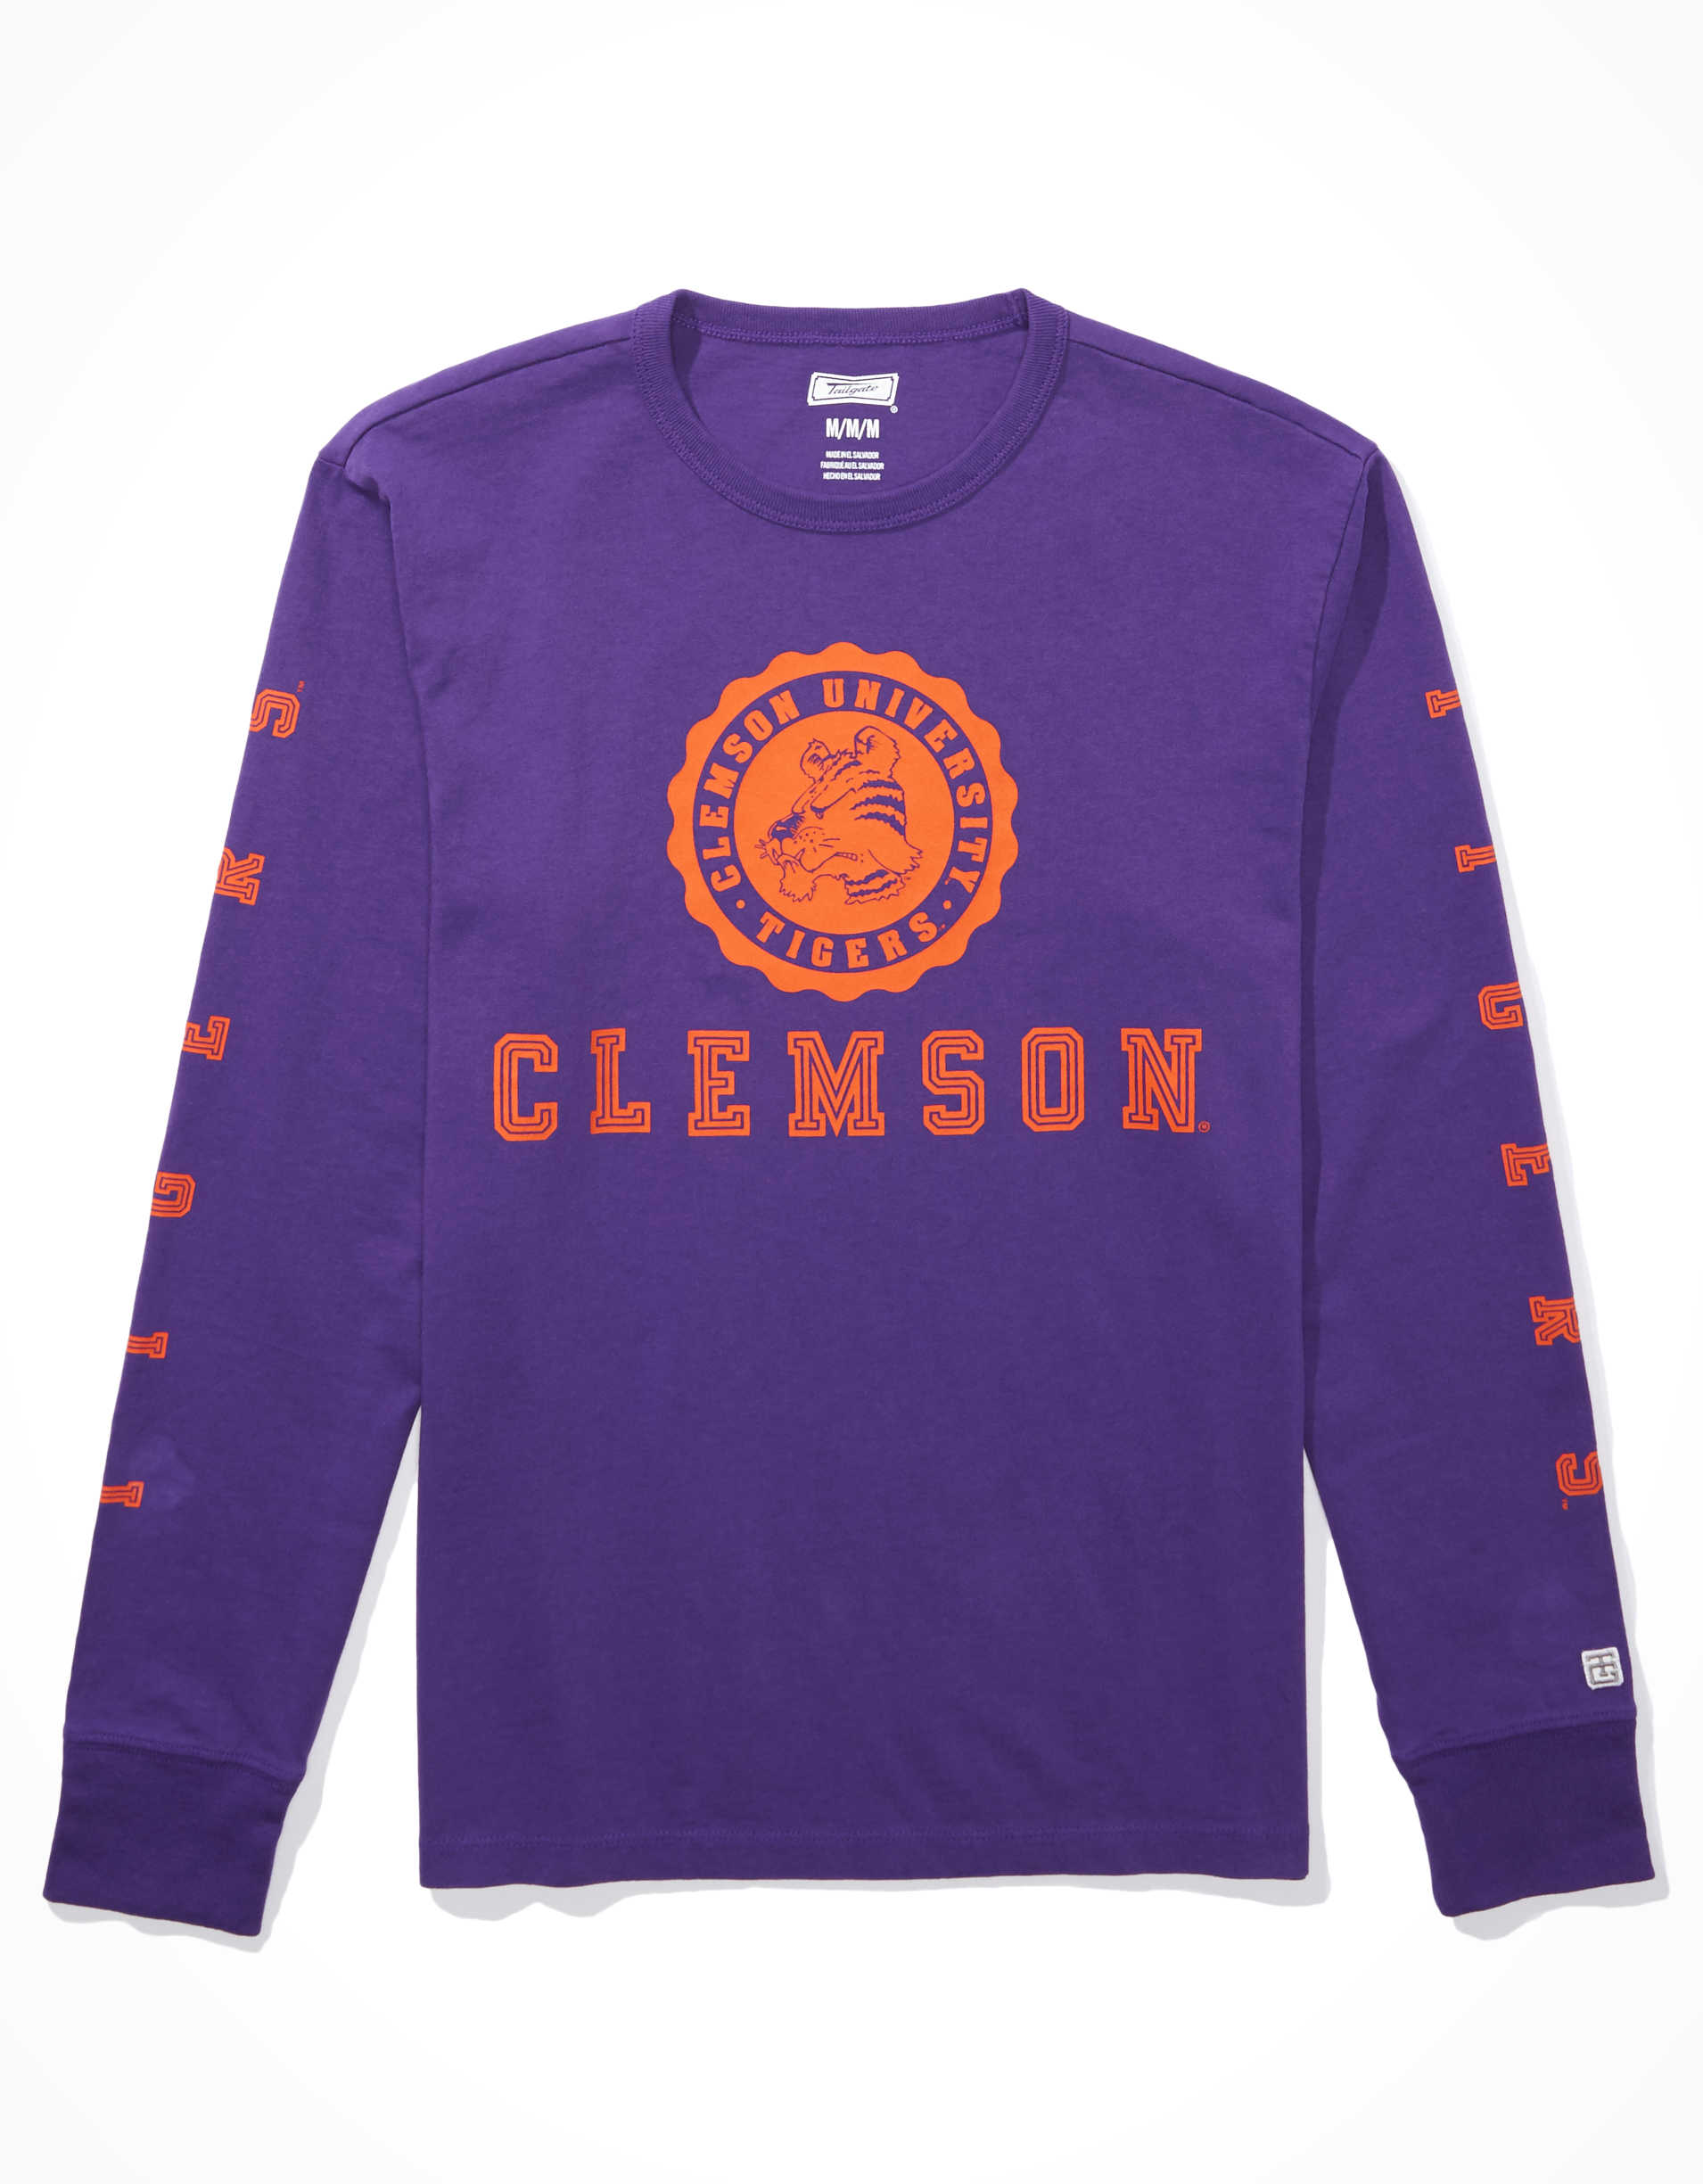 Tailgate Men's Clemson Tigers Long-Sleeve T-Shirt